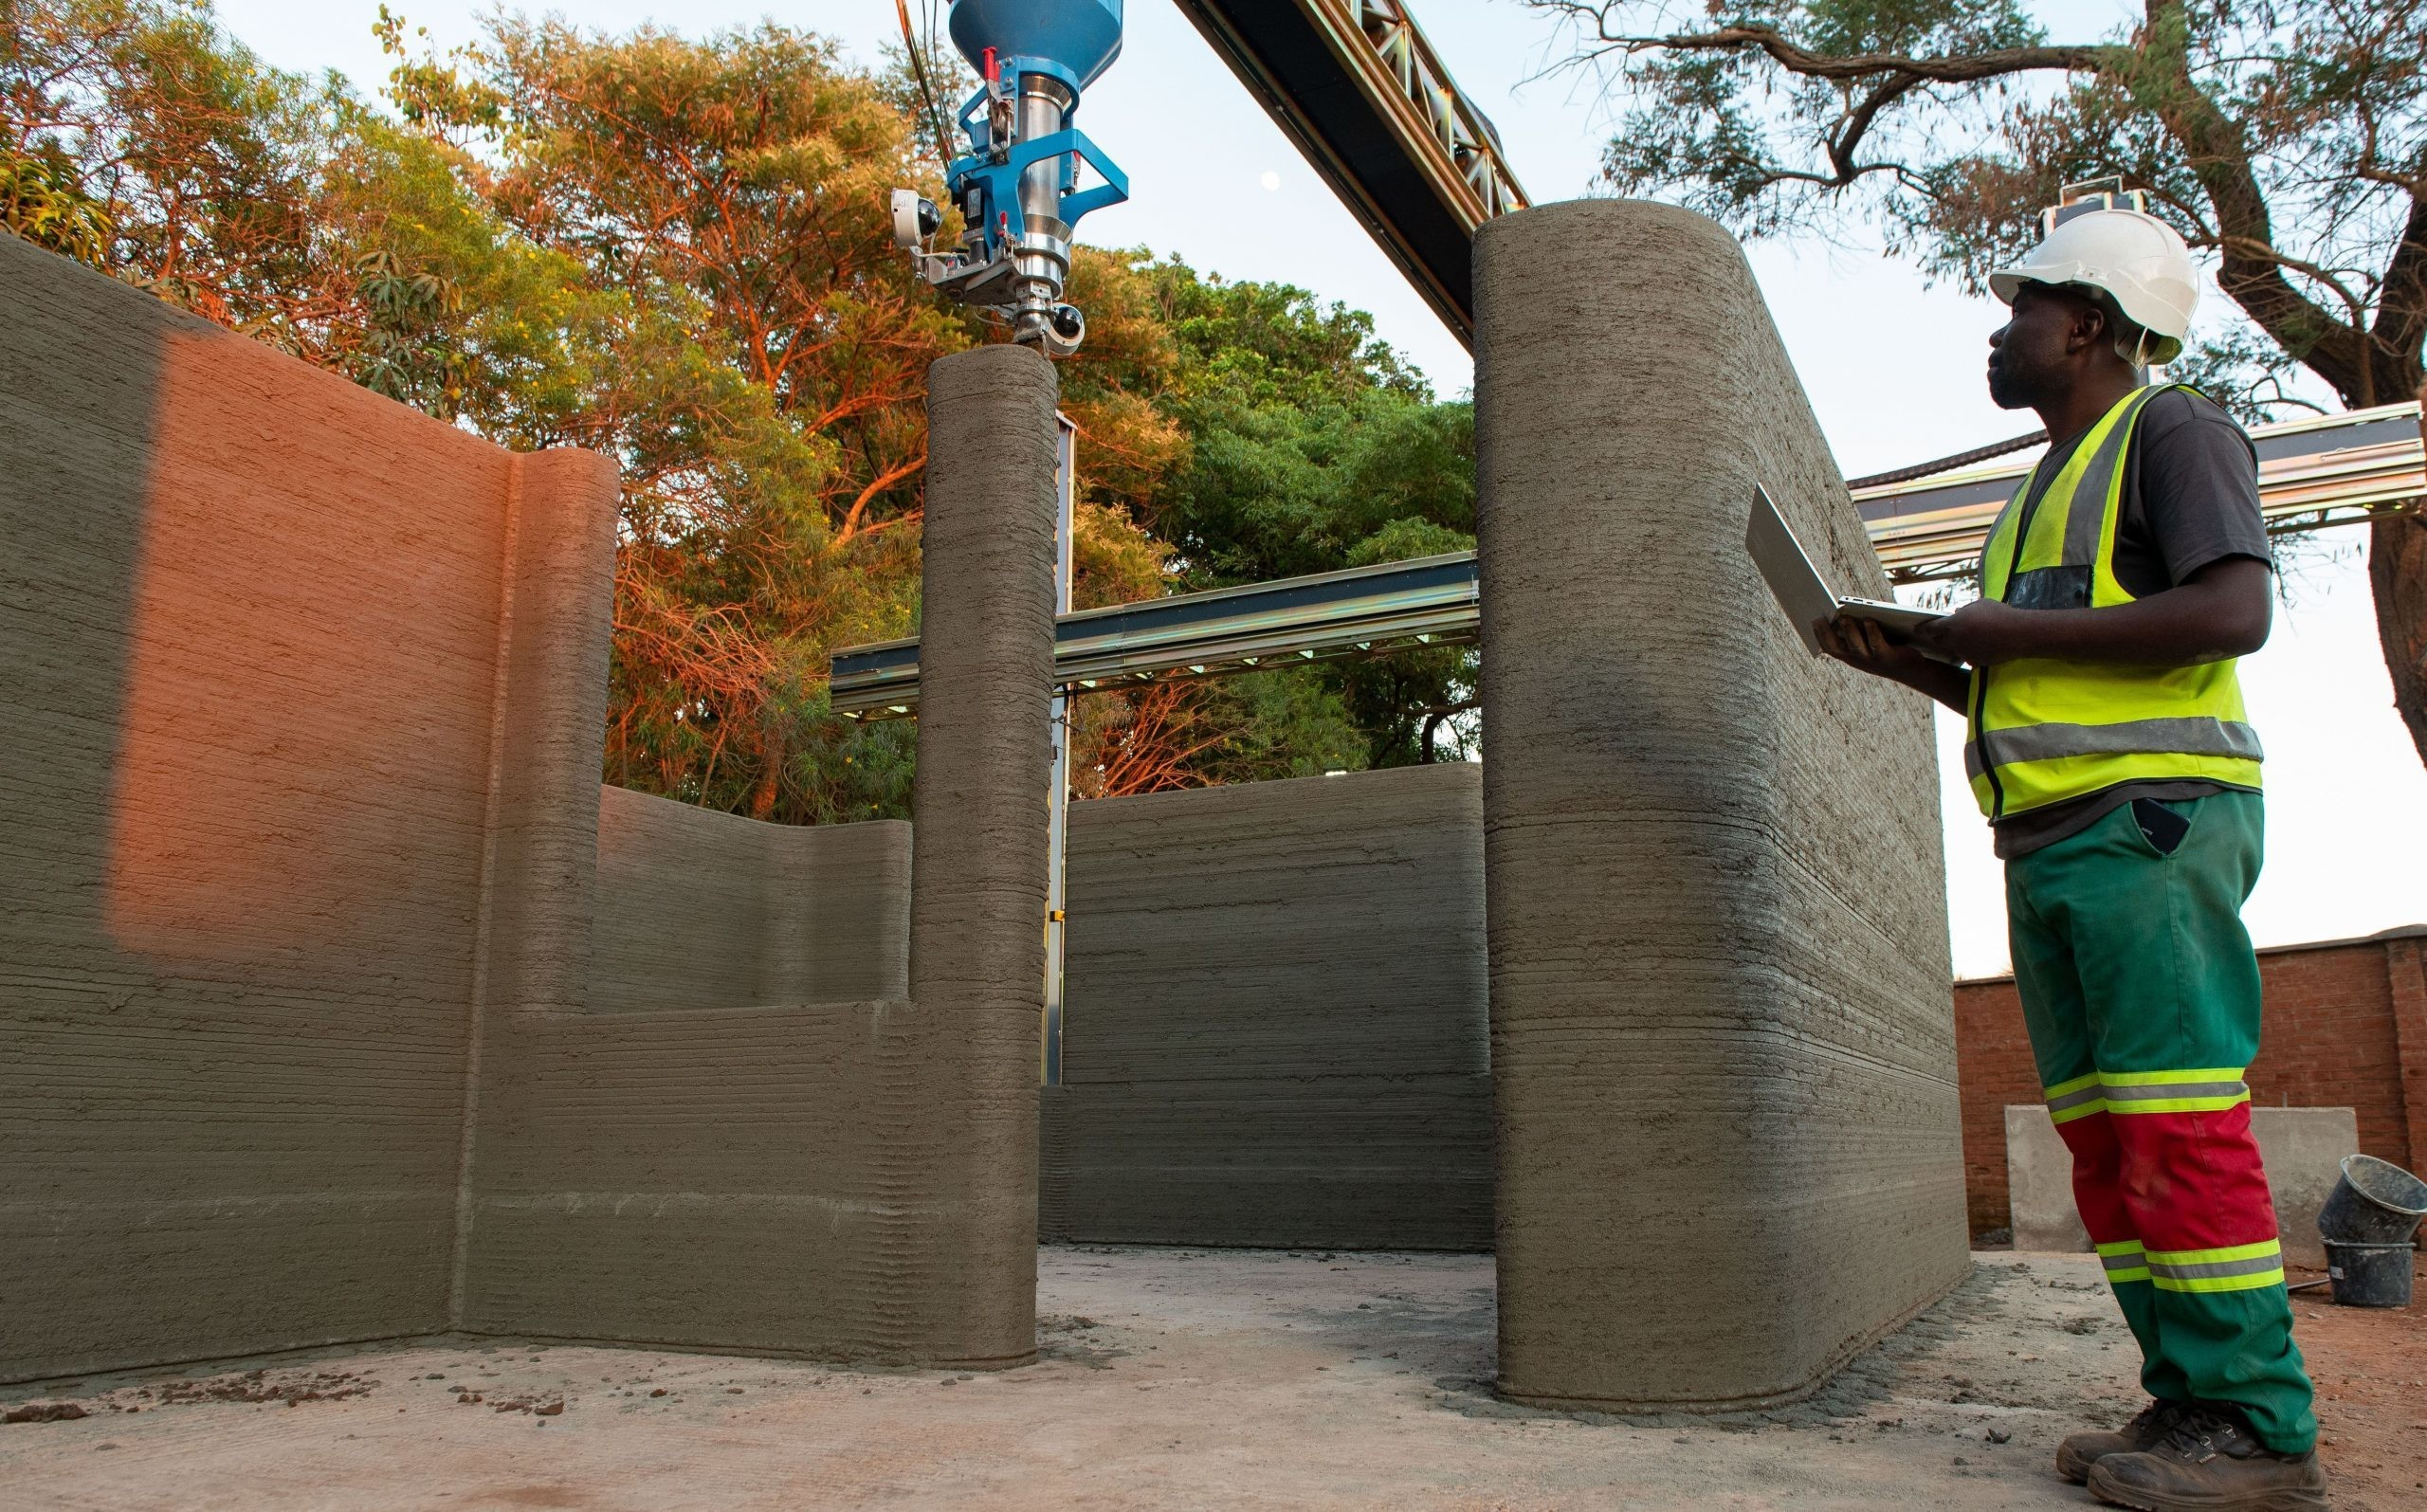 Africa's first 3D-printed affordable home